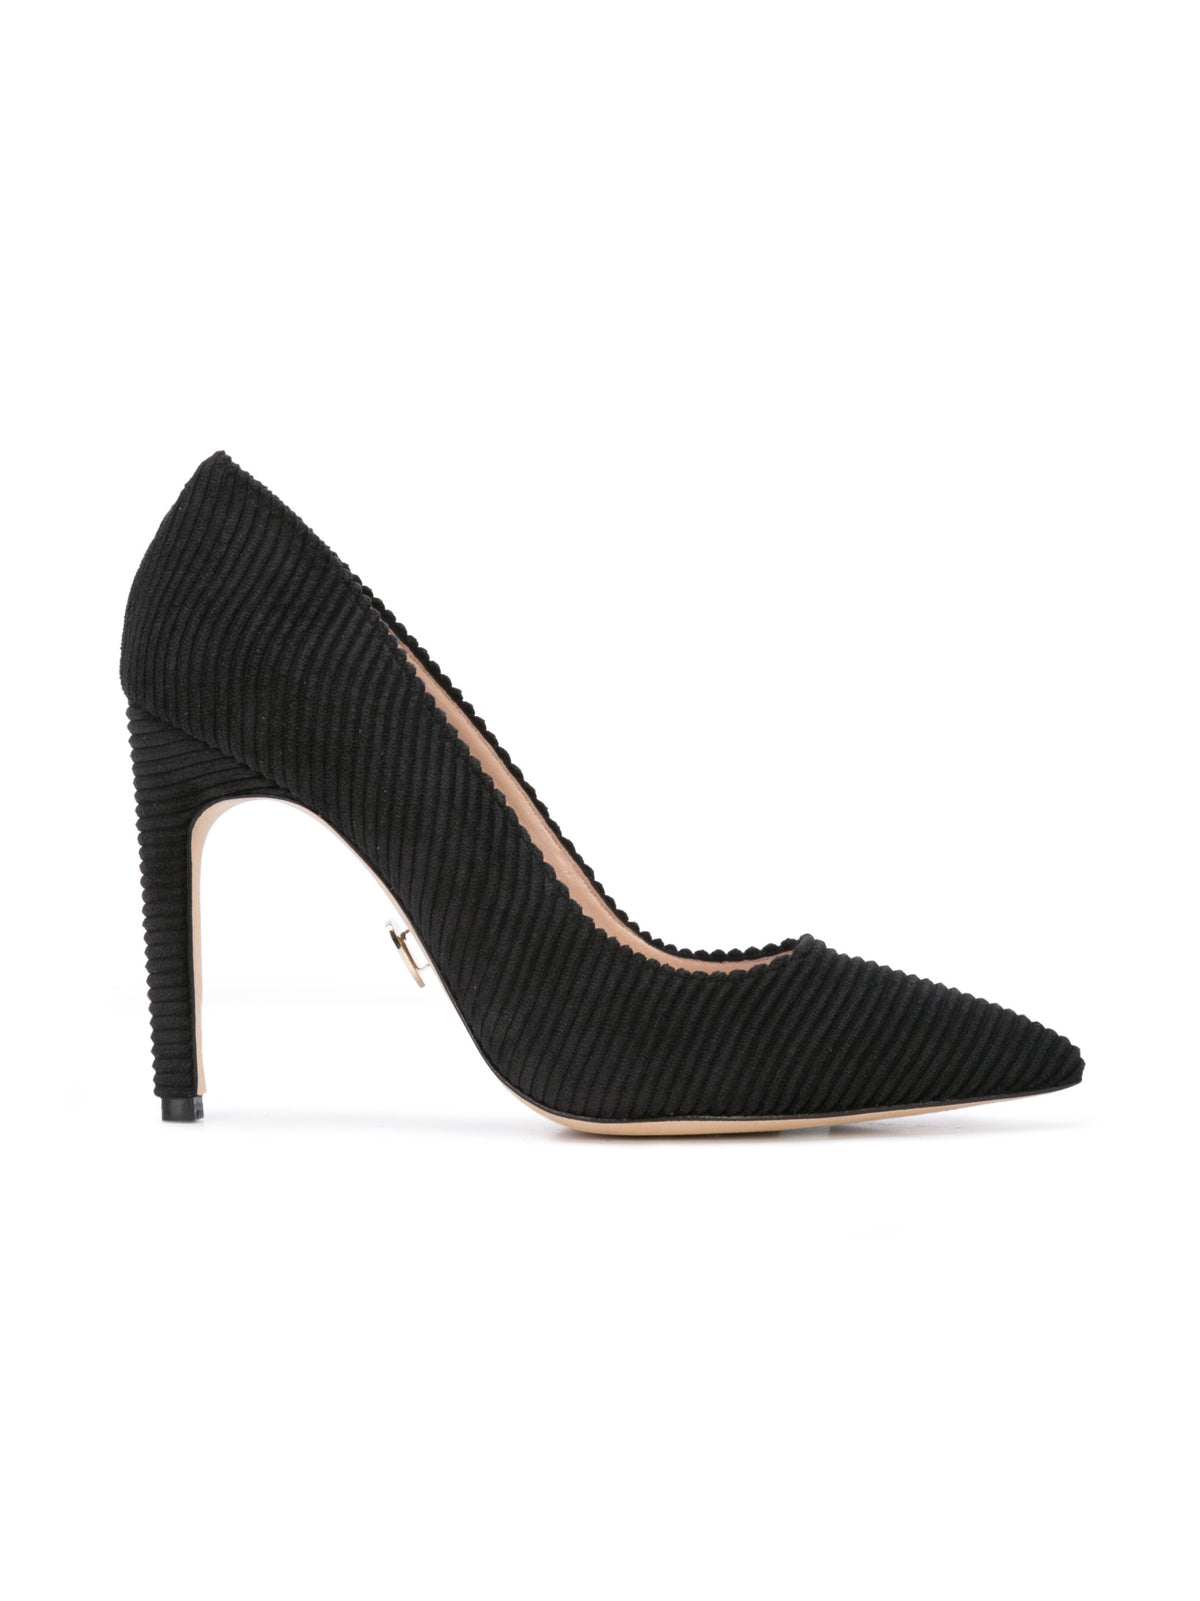 Cleopatra Pump - Black corduroy without wraps. Profile View